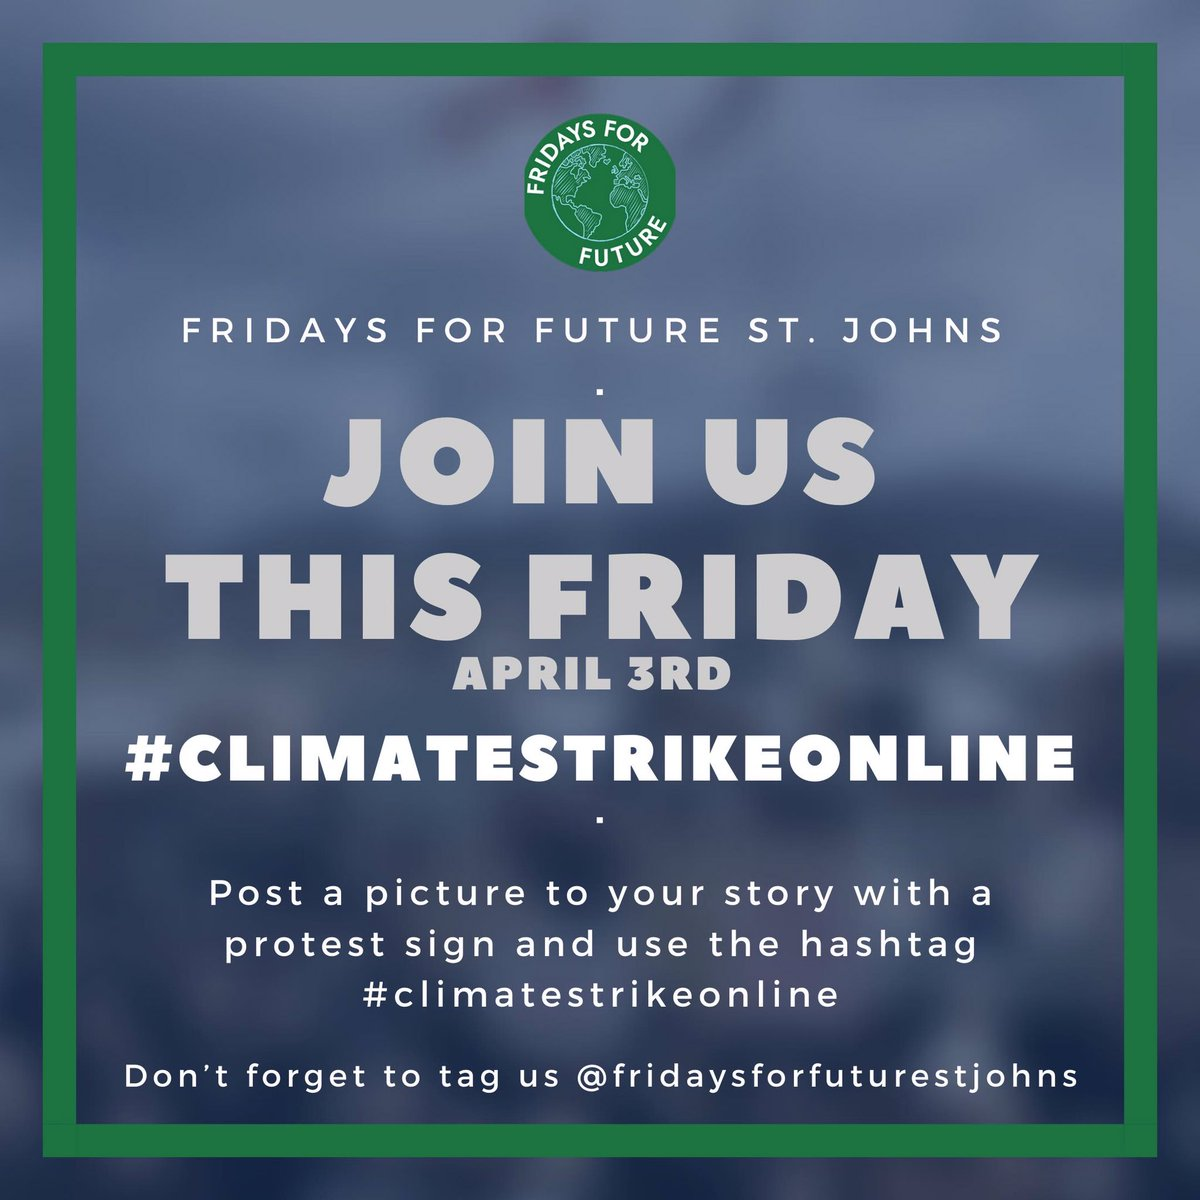 This Friday!! #ClimateStrikeOnline